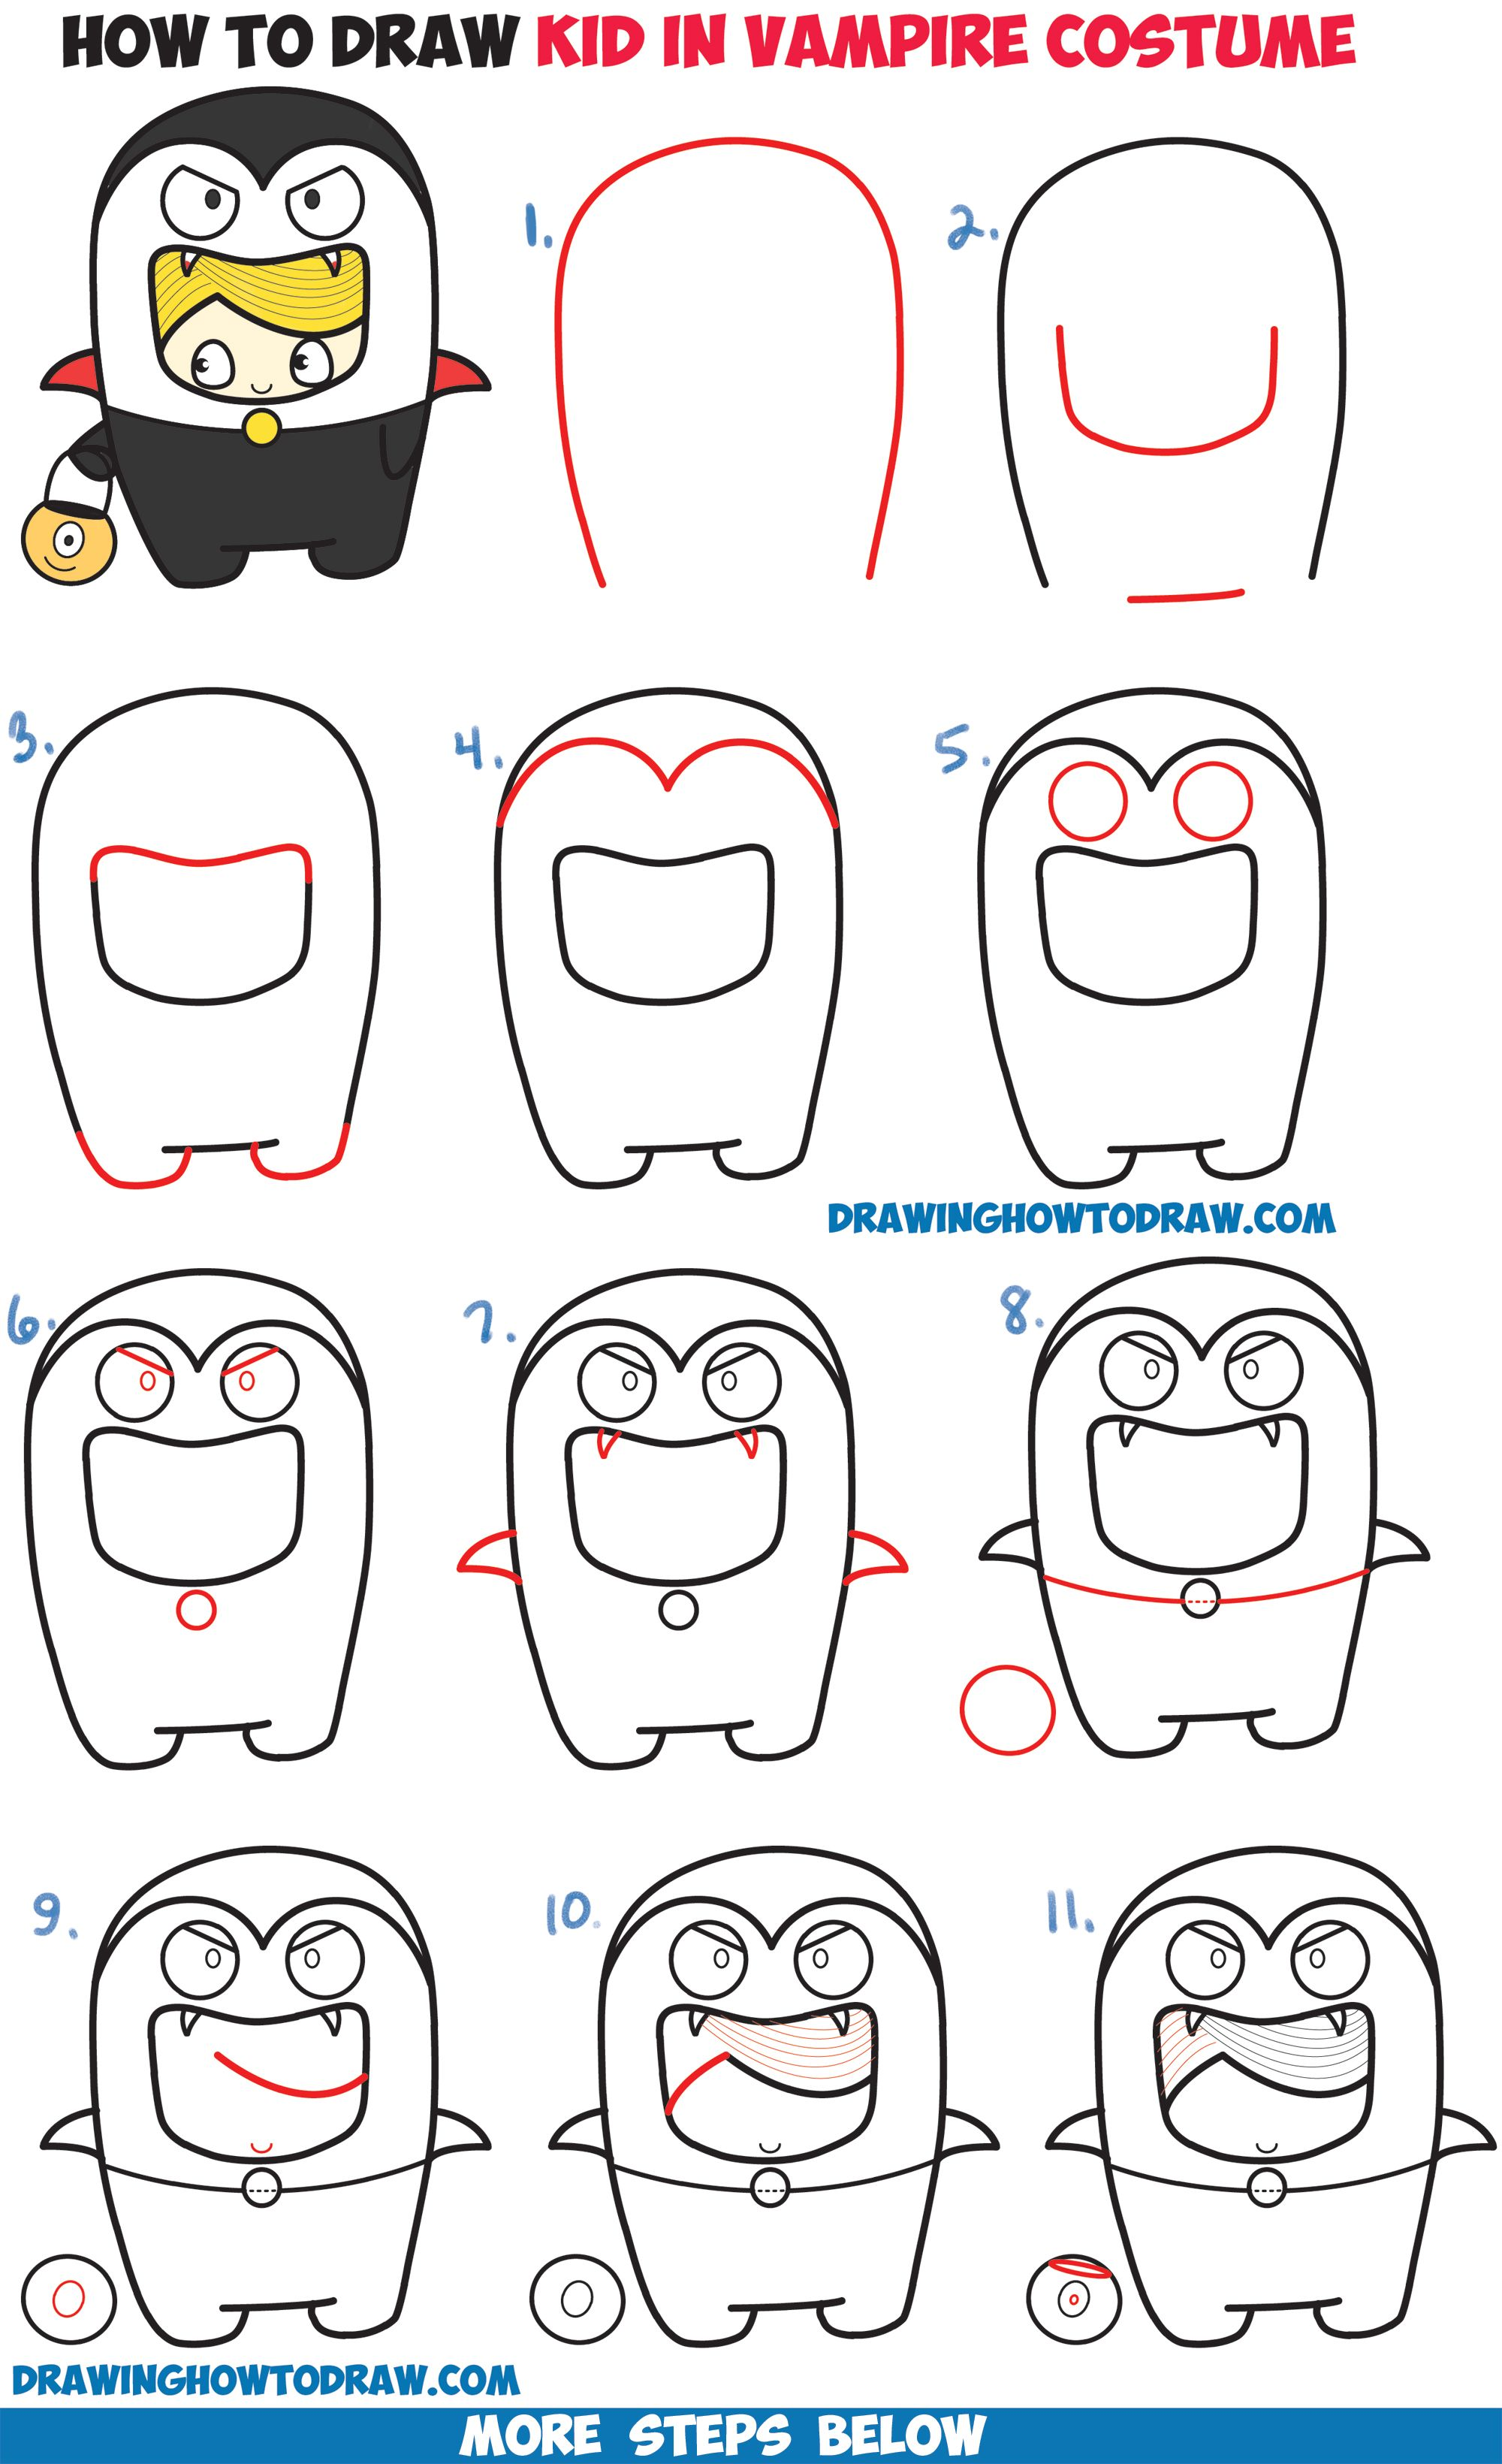 How To Draw A Kid In A Halloween Vampire Costume Cute Kawaii